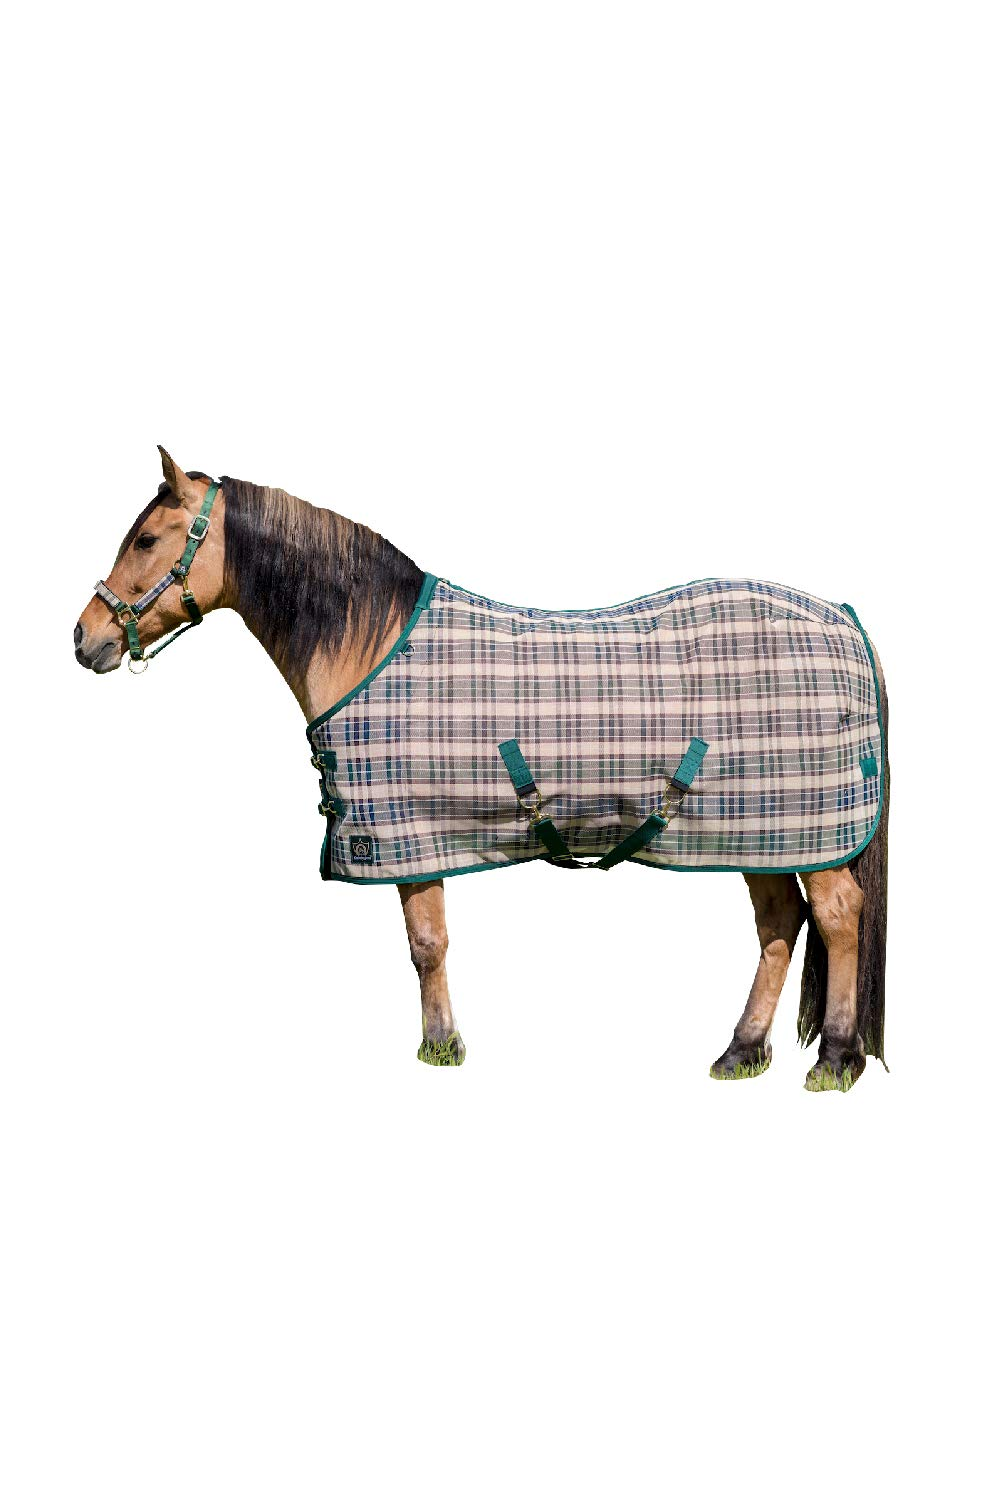 Kensington Platinum SureFit Protective Fly Sheet for Horses - SureFit Cut with Snap Front Chest Closure - Made of Grooming Mesh This Sheet Offers Maximum Protection Year Round - 81'' Deluxe Hunter by Kensington Protective Products (Image #1)